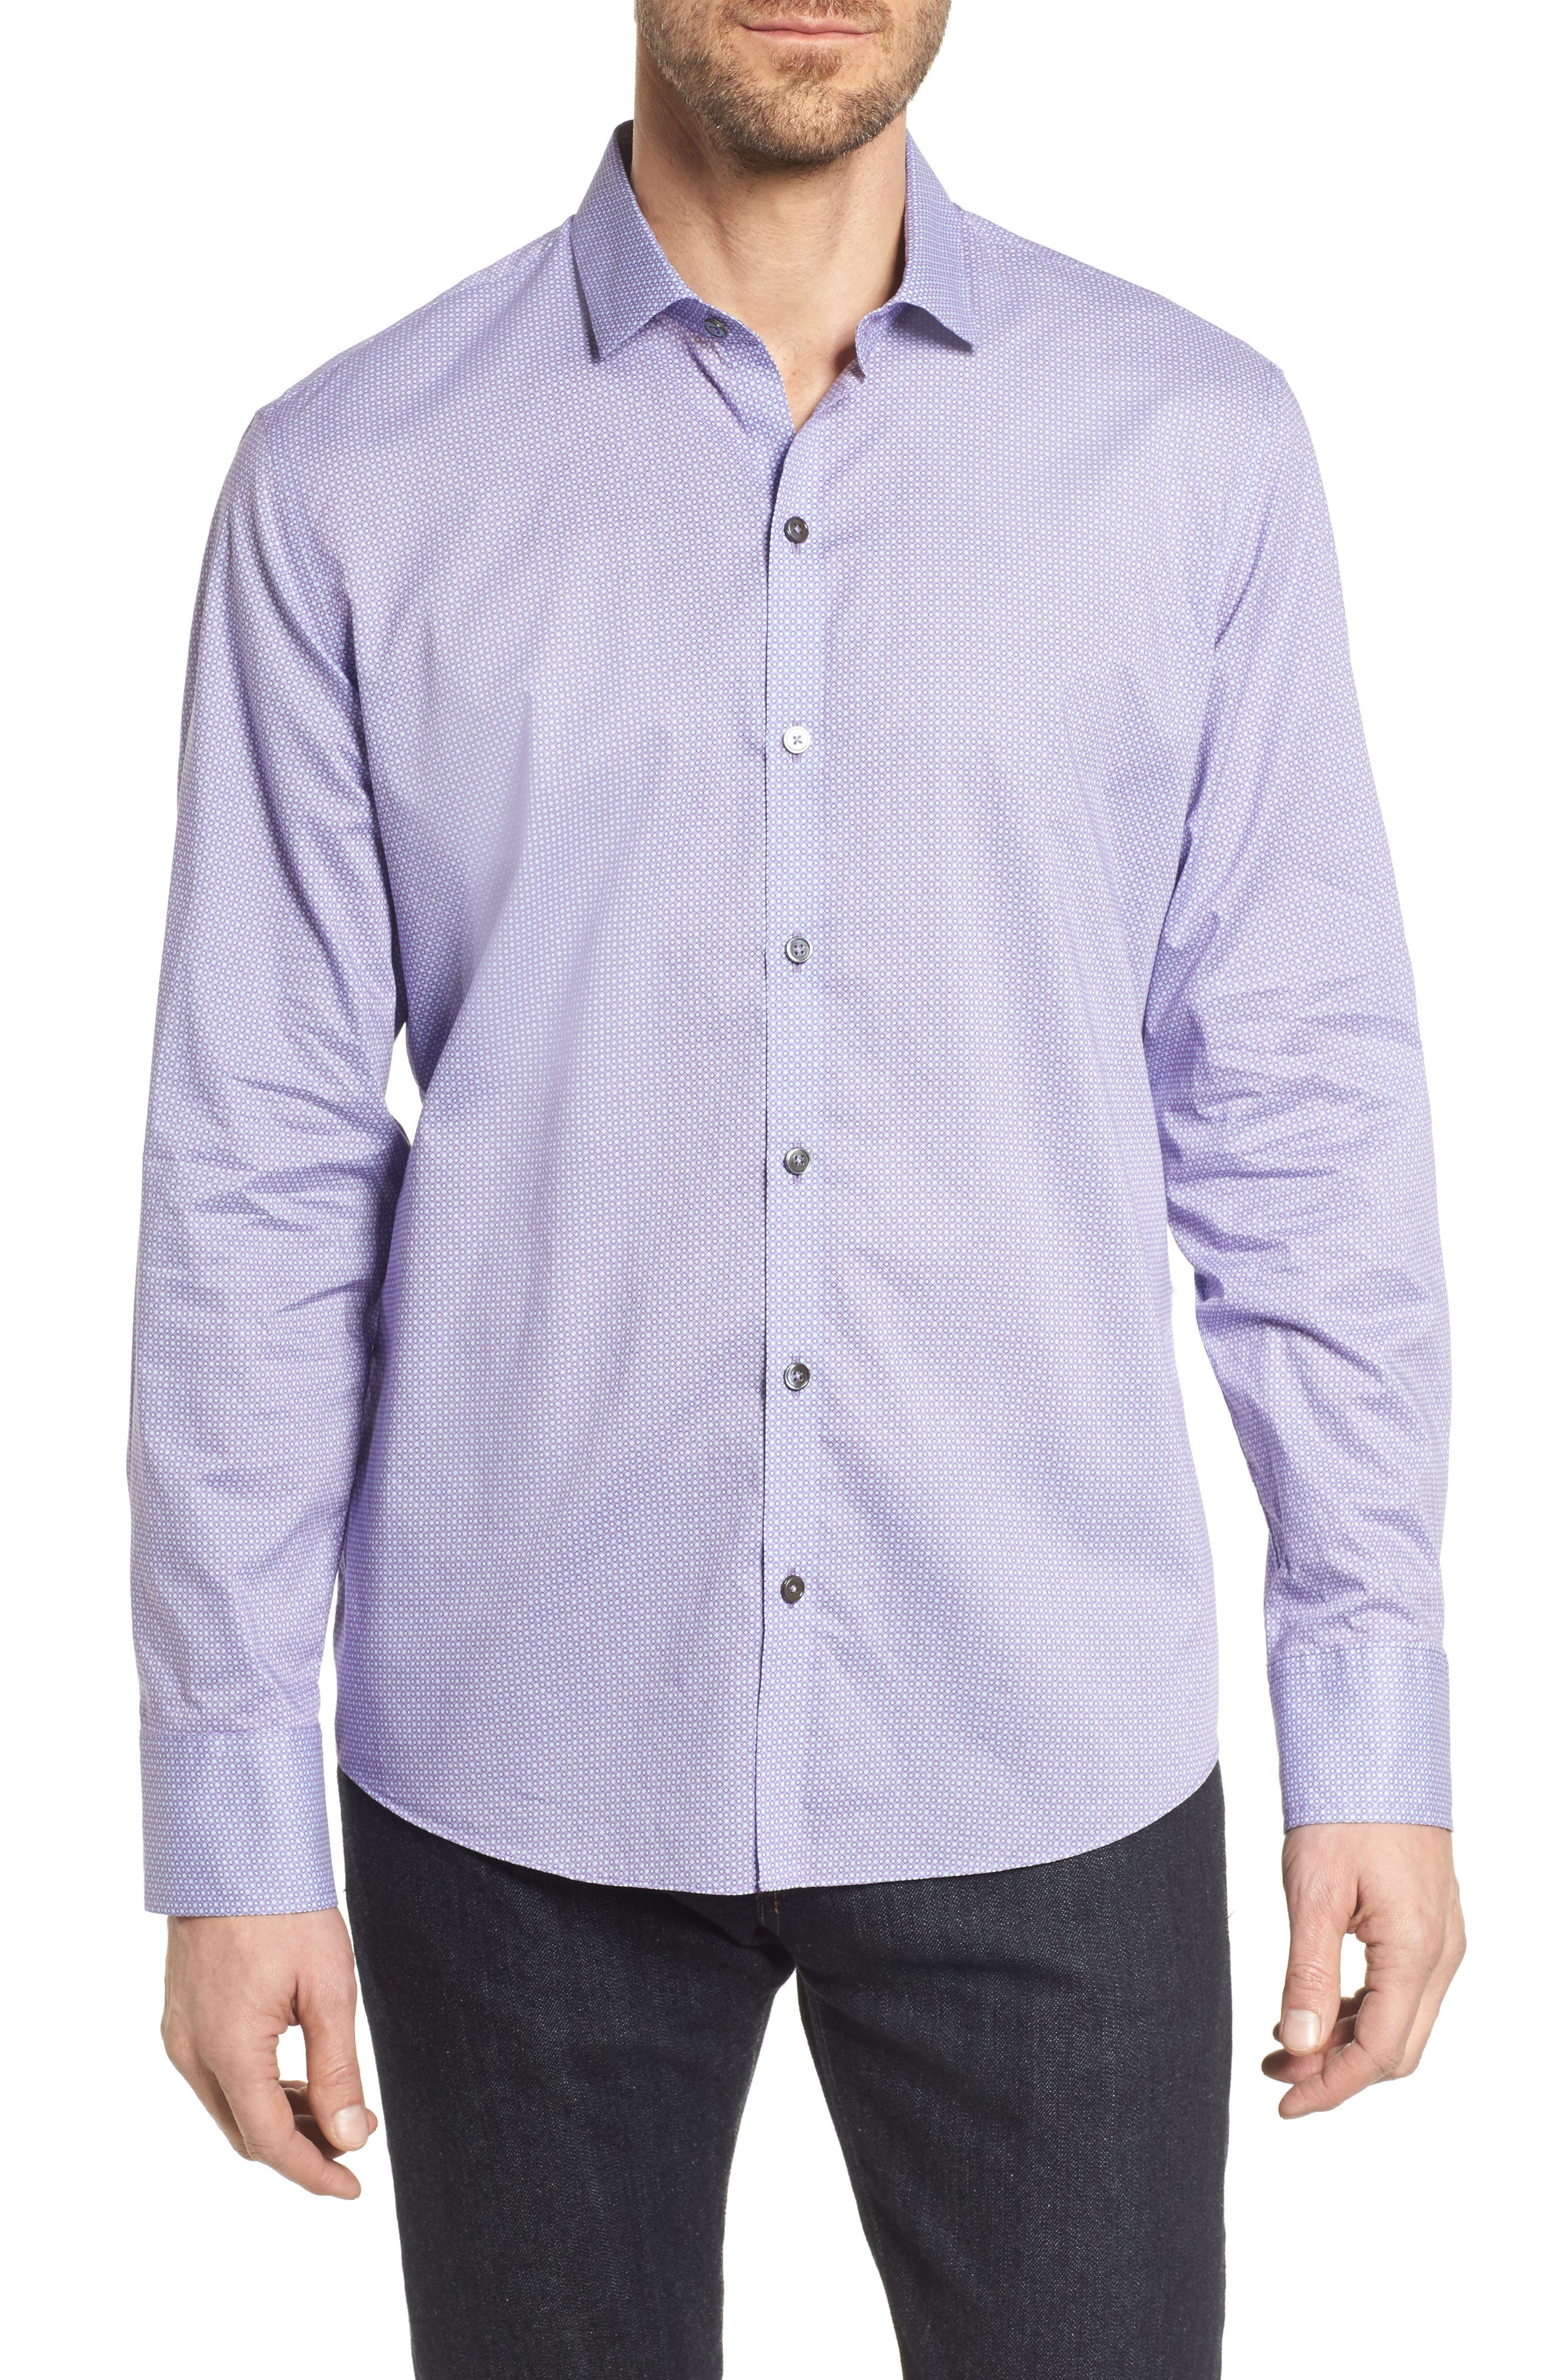 O'Malley Circle Print Sport Shirt,                         Main,                         color, Purple